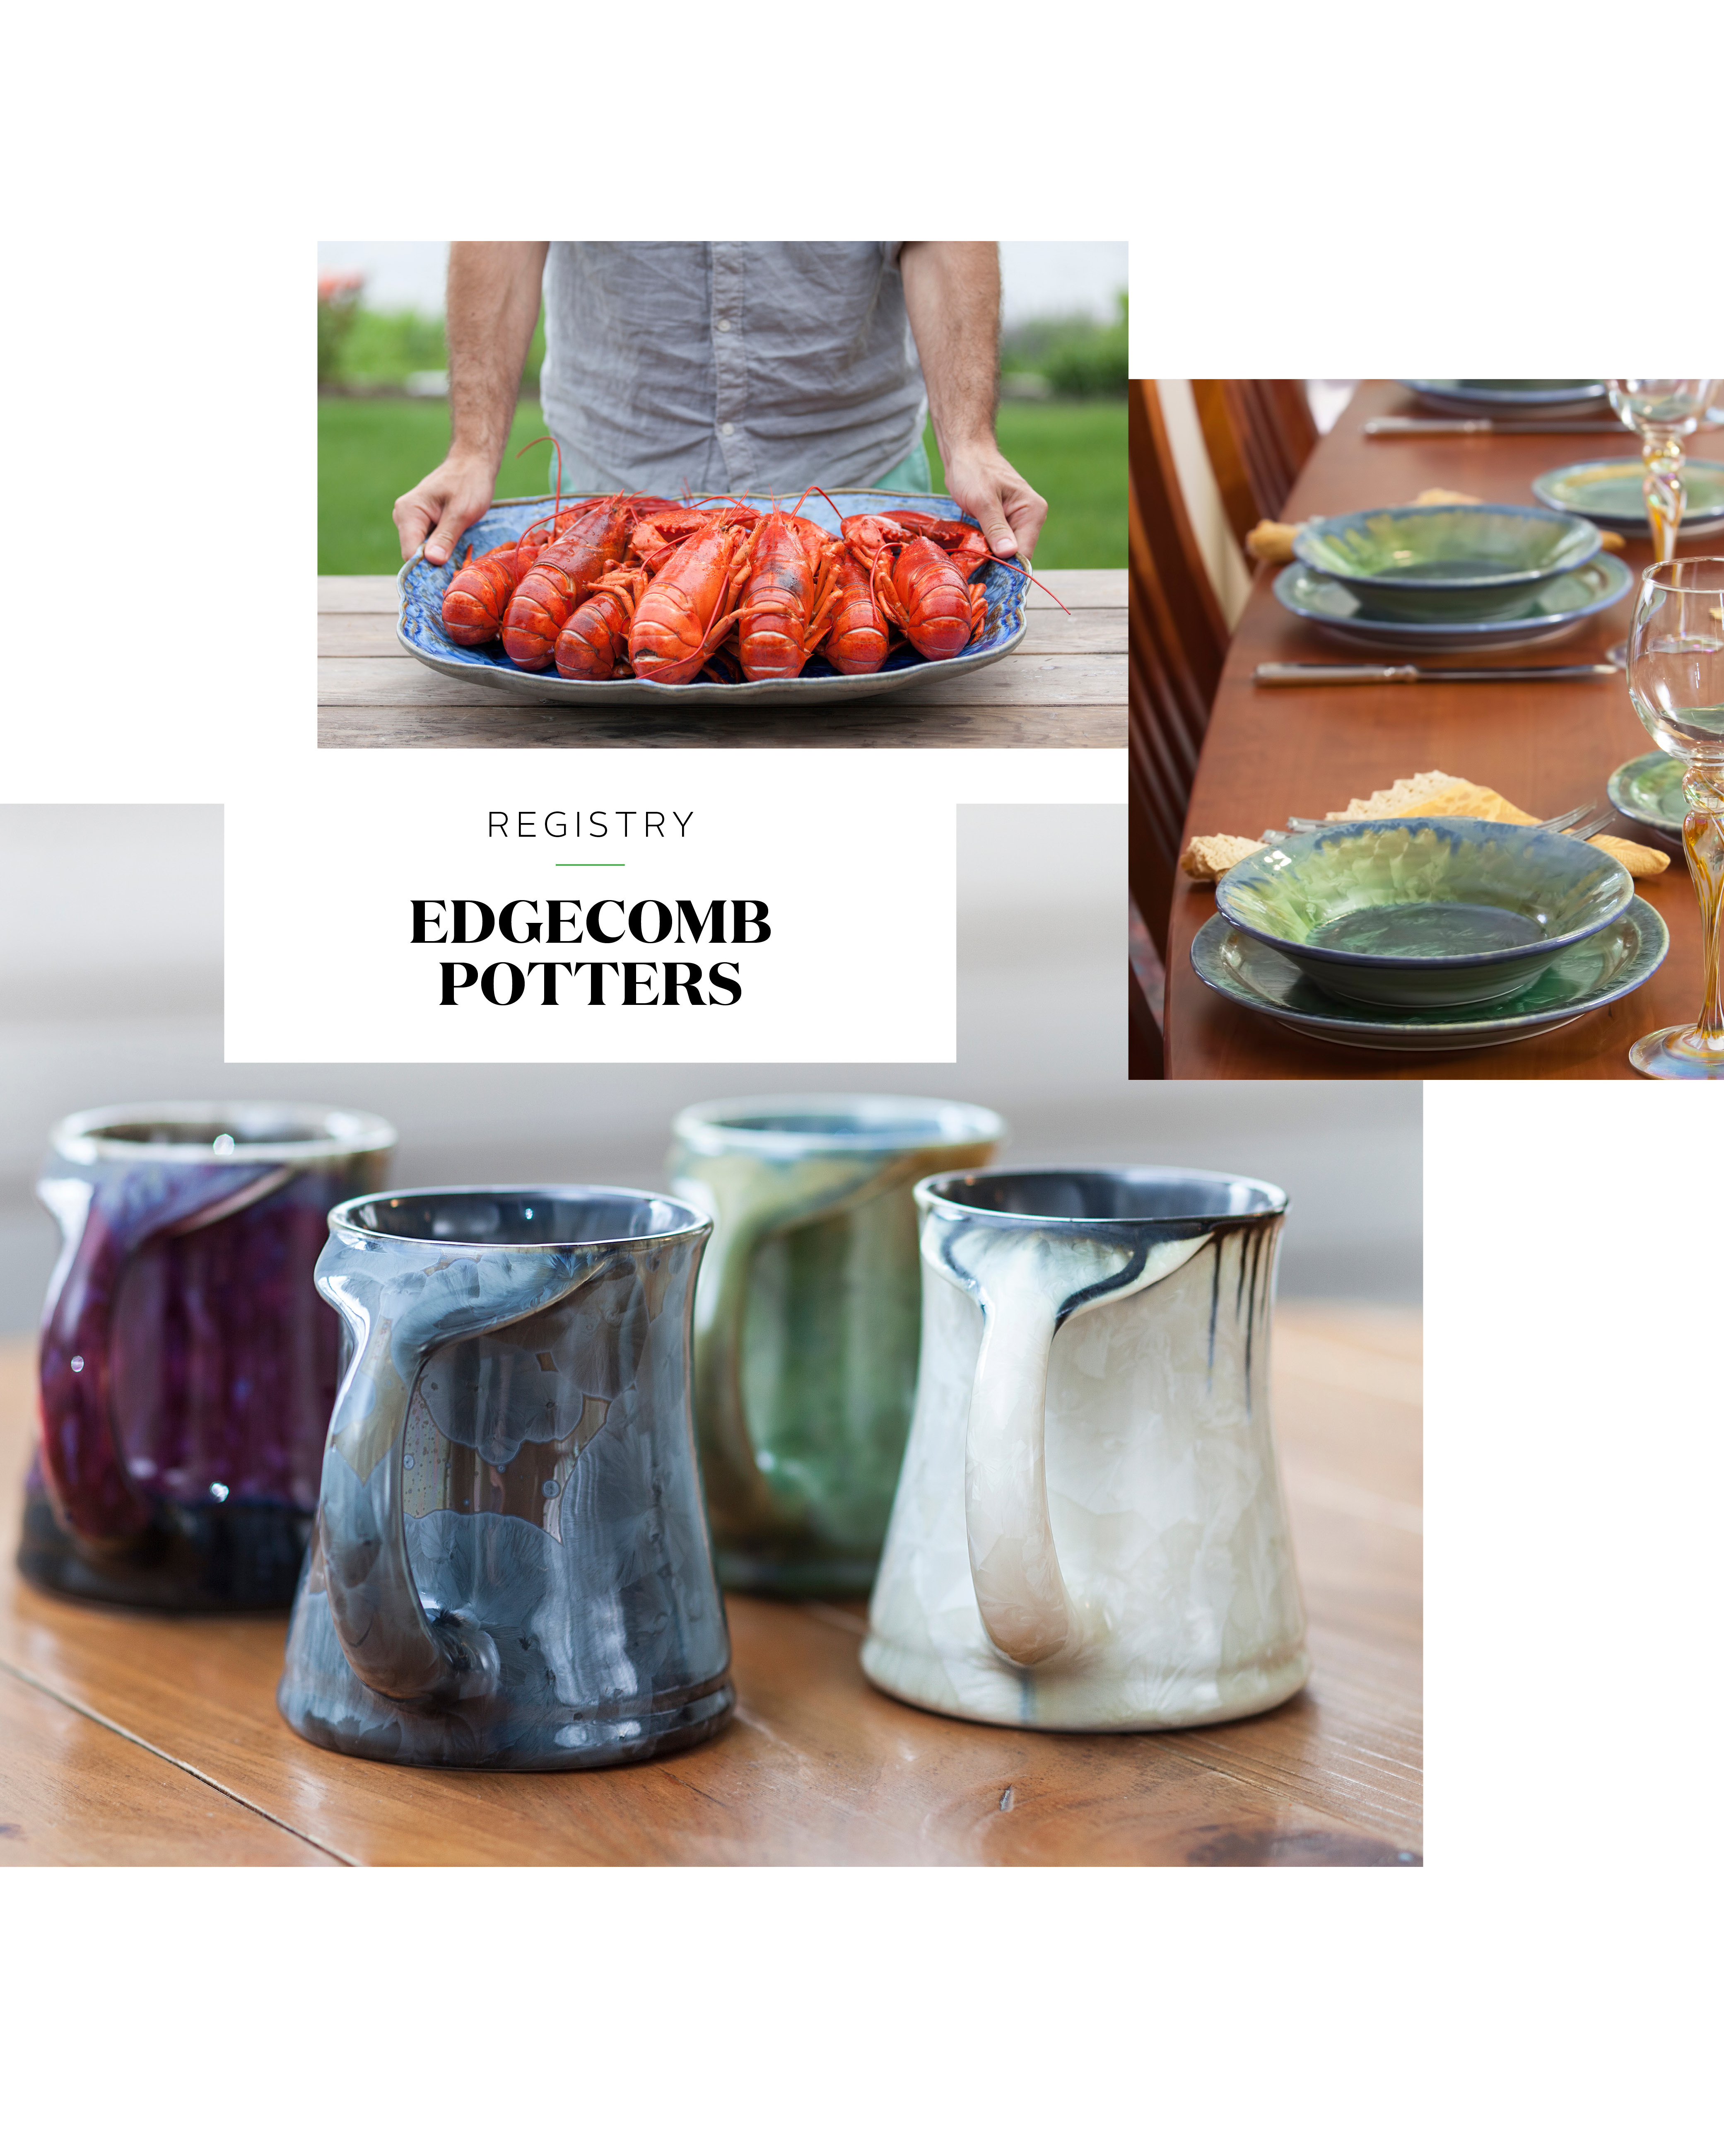 small-business-registry-edgecomb-potters-0714.jpg